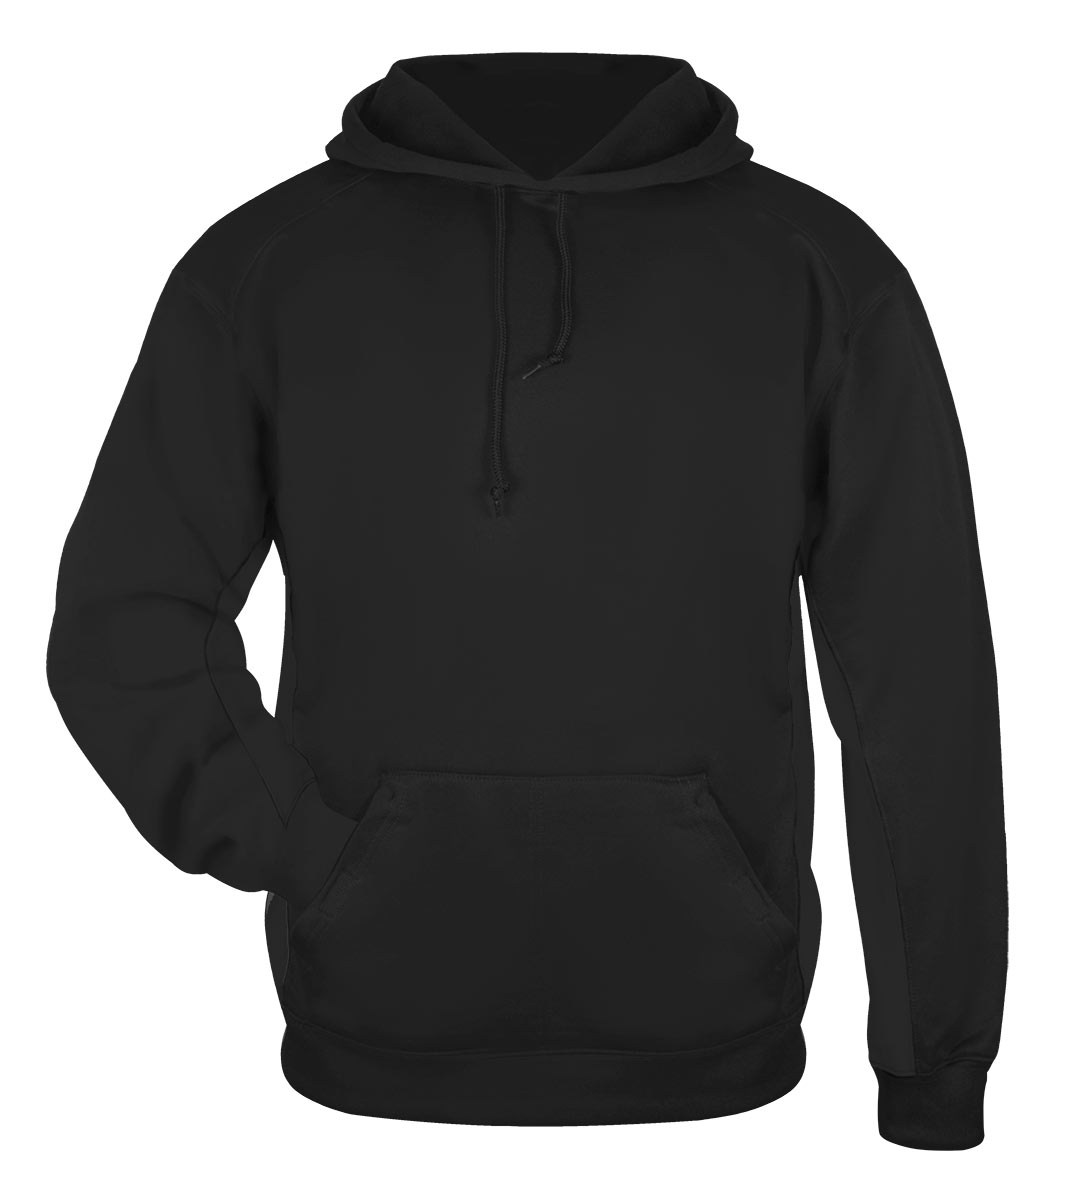 Badger Youth Moisture Management Hooded Sweatshirt